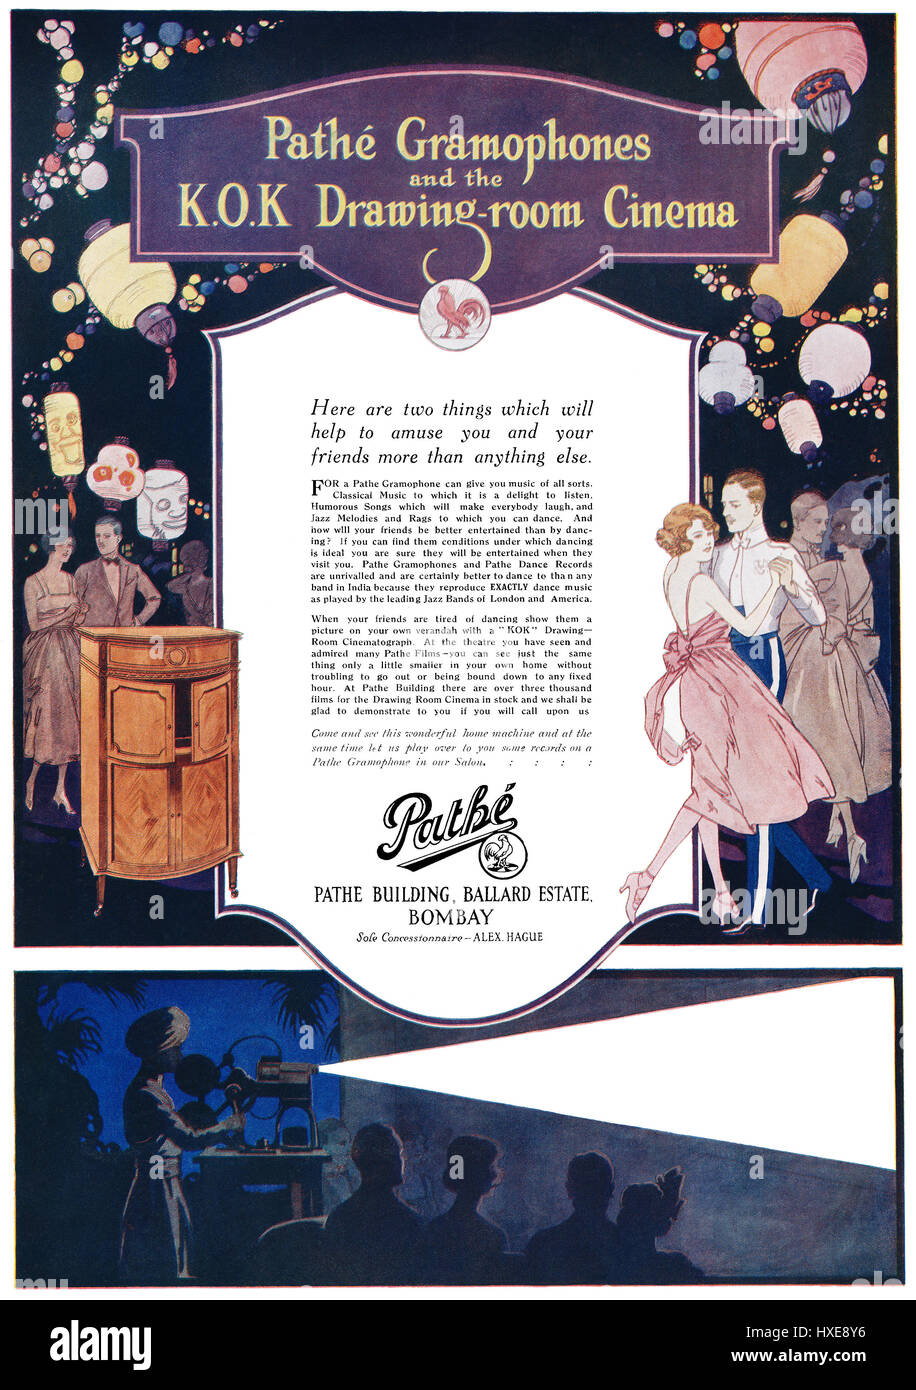 1922 Indian advertisement for Pathé Gramophones and K.O.K. Home Cinema. - Stock Image